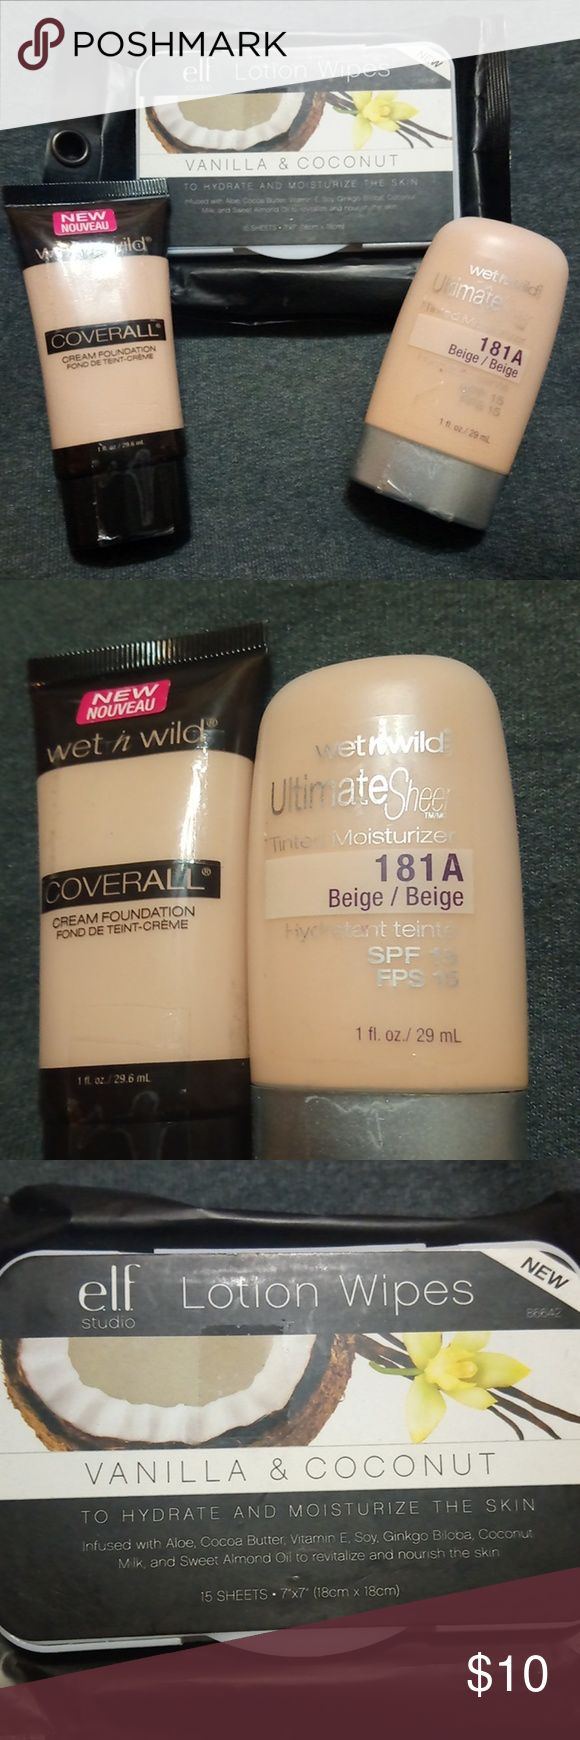 Wet n Wild make up and elf wipes New wet n wild cream foundation in shade fair with wet n Wild tinted moisturizer in beige and lotion wipes all included. wet n wild Makeup Foundation